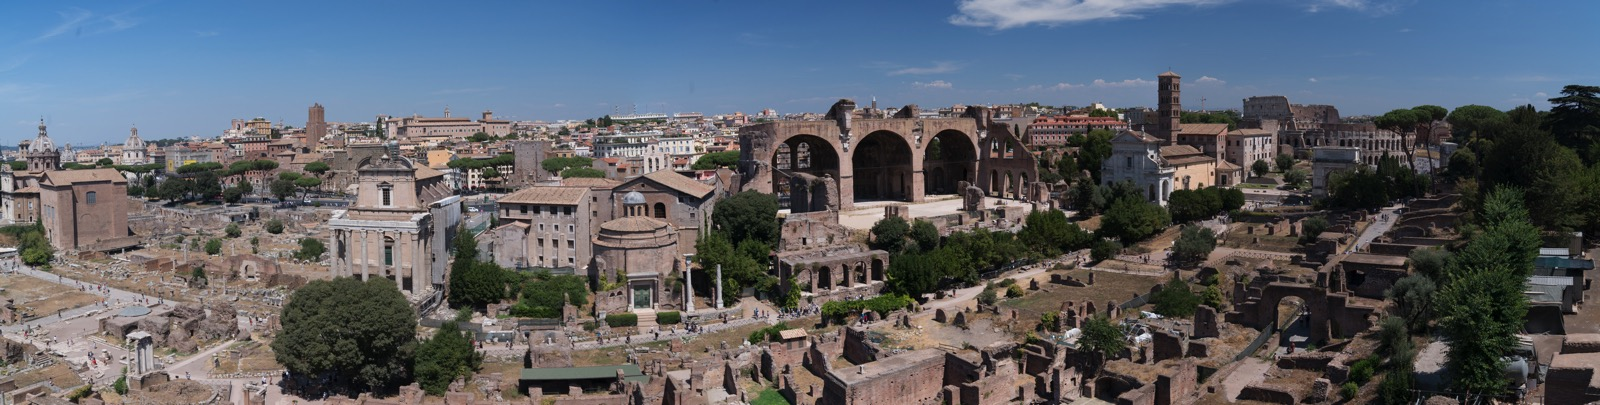 The Forum and the Colosseum as viewed from the Palatine Hill. (  Rome, Lazio, Italy.)